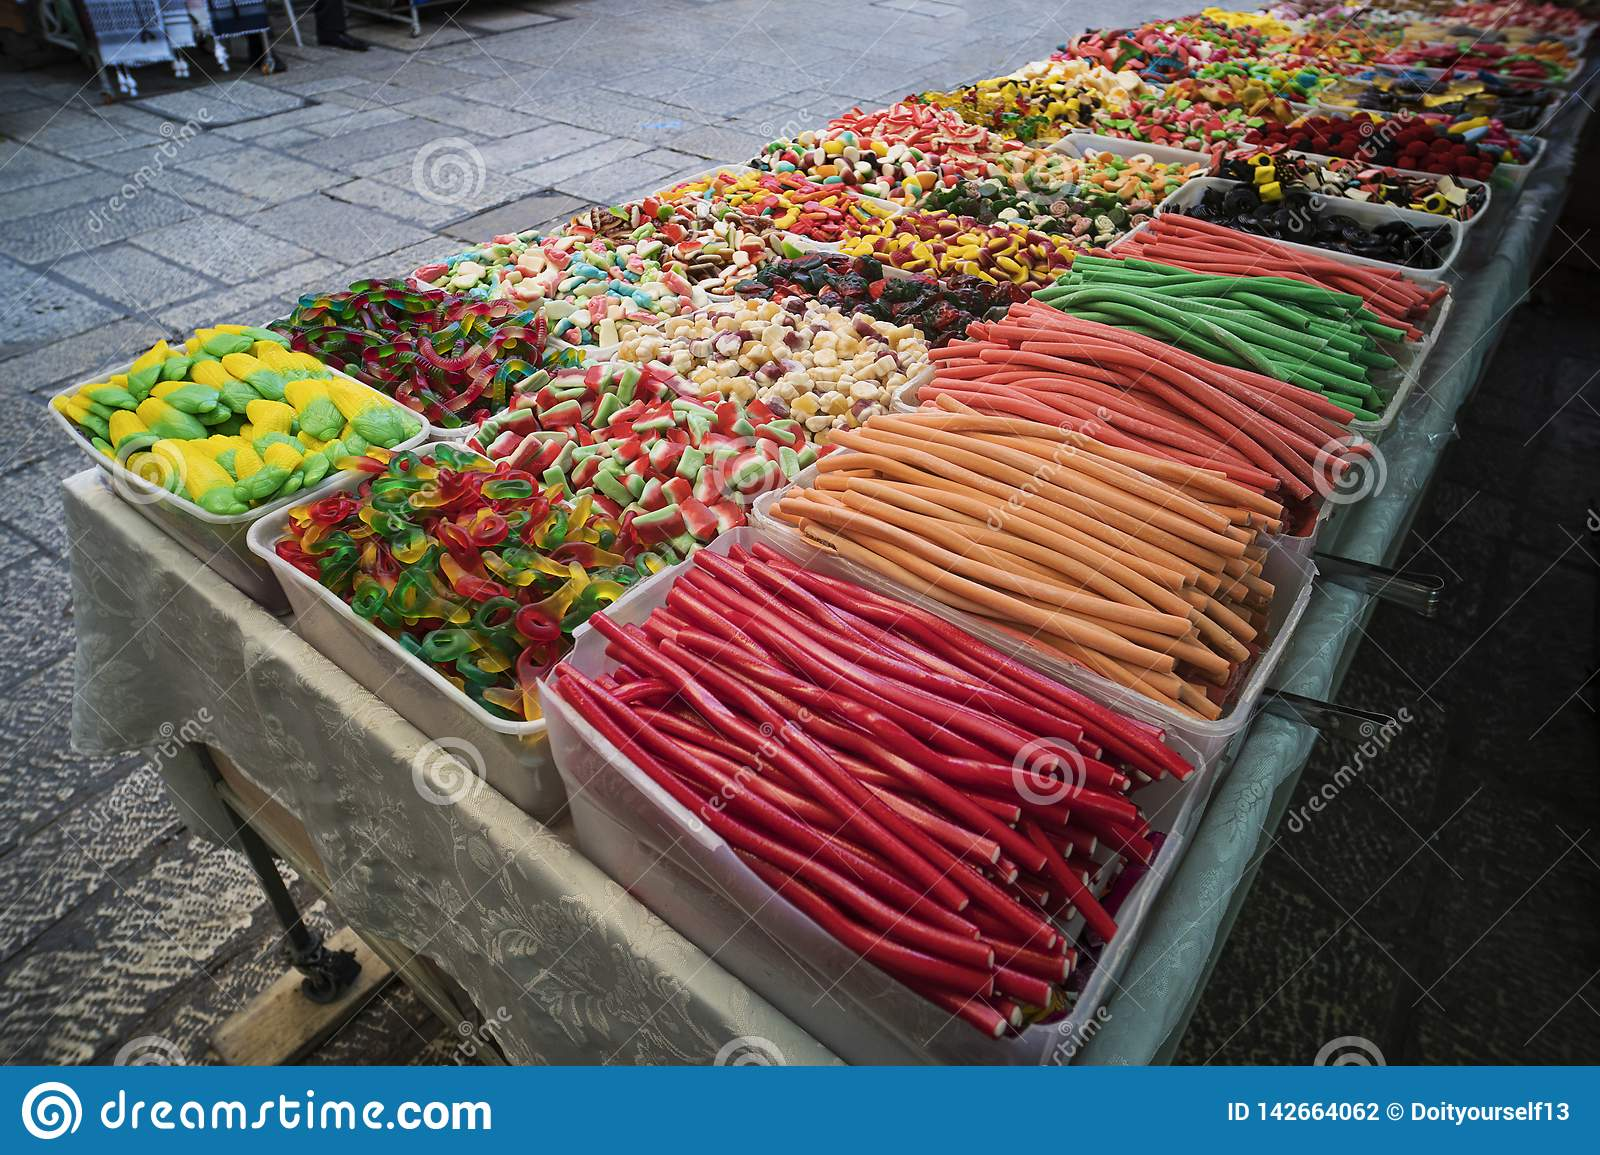 Various colorful jelly sweets and confectionary exposed in plastic boxes for sale in the street. Contrasting colors of candies and